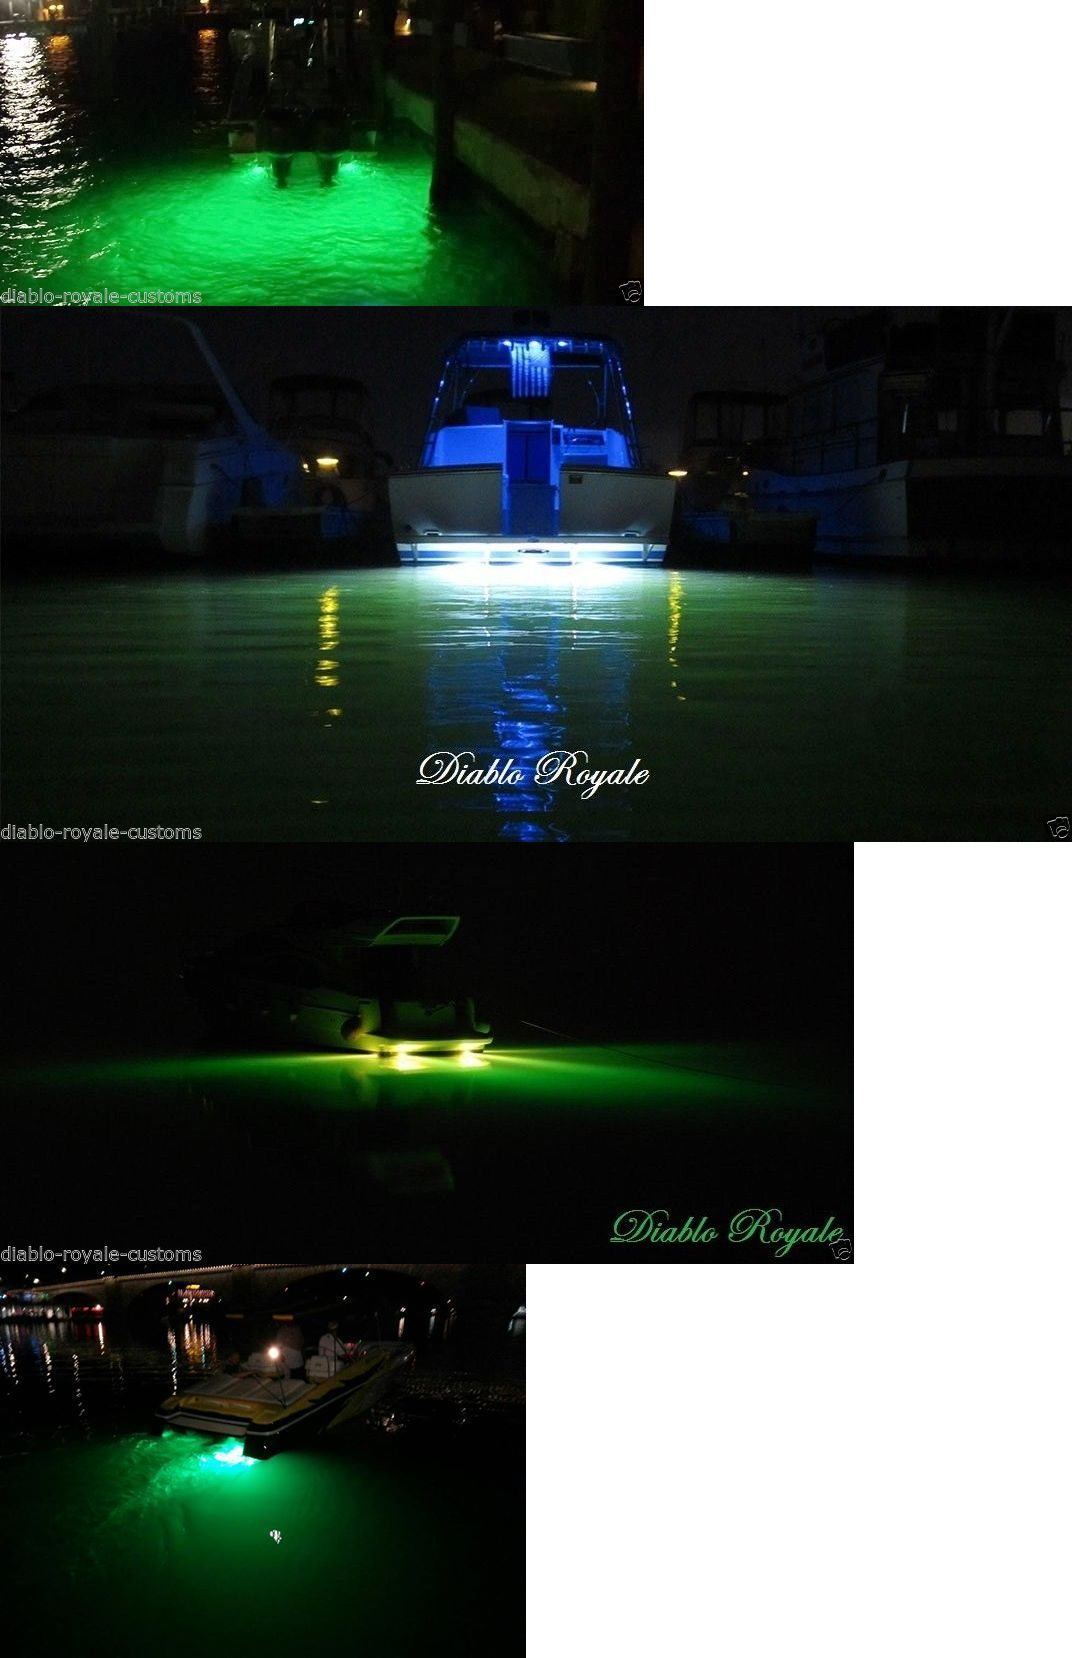 lights 123489: green led gty underwater fishing drop light boat, Reel Combo